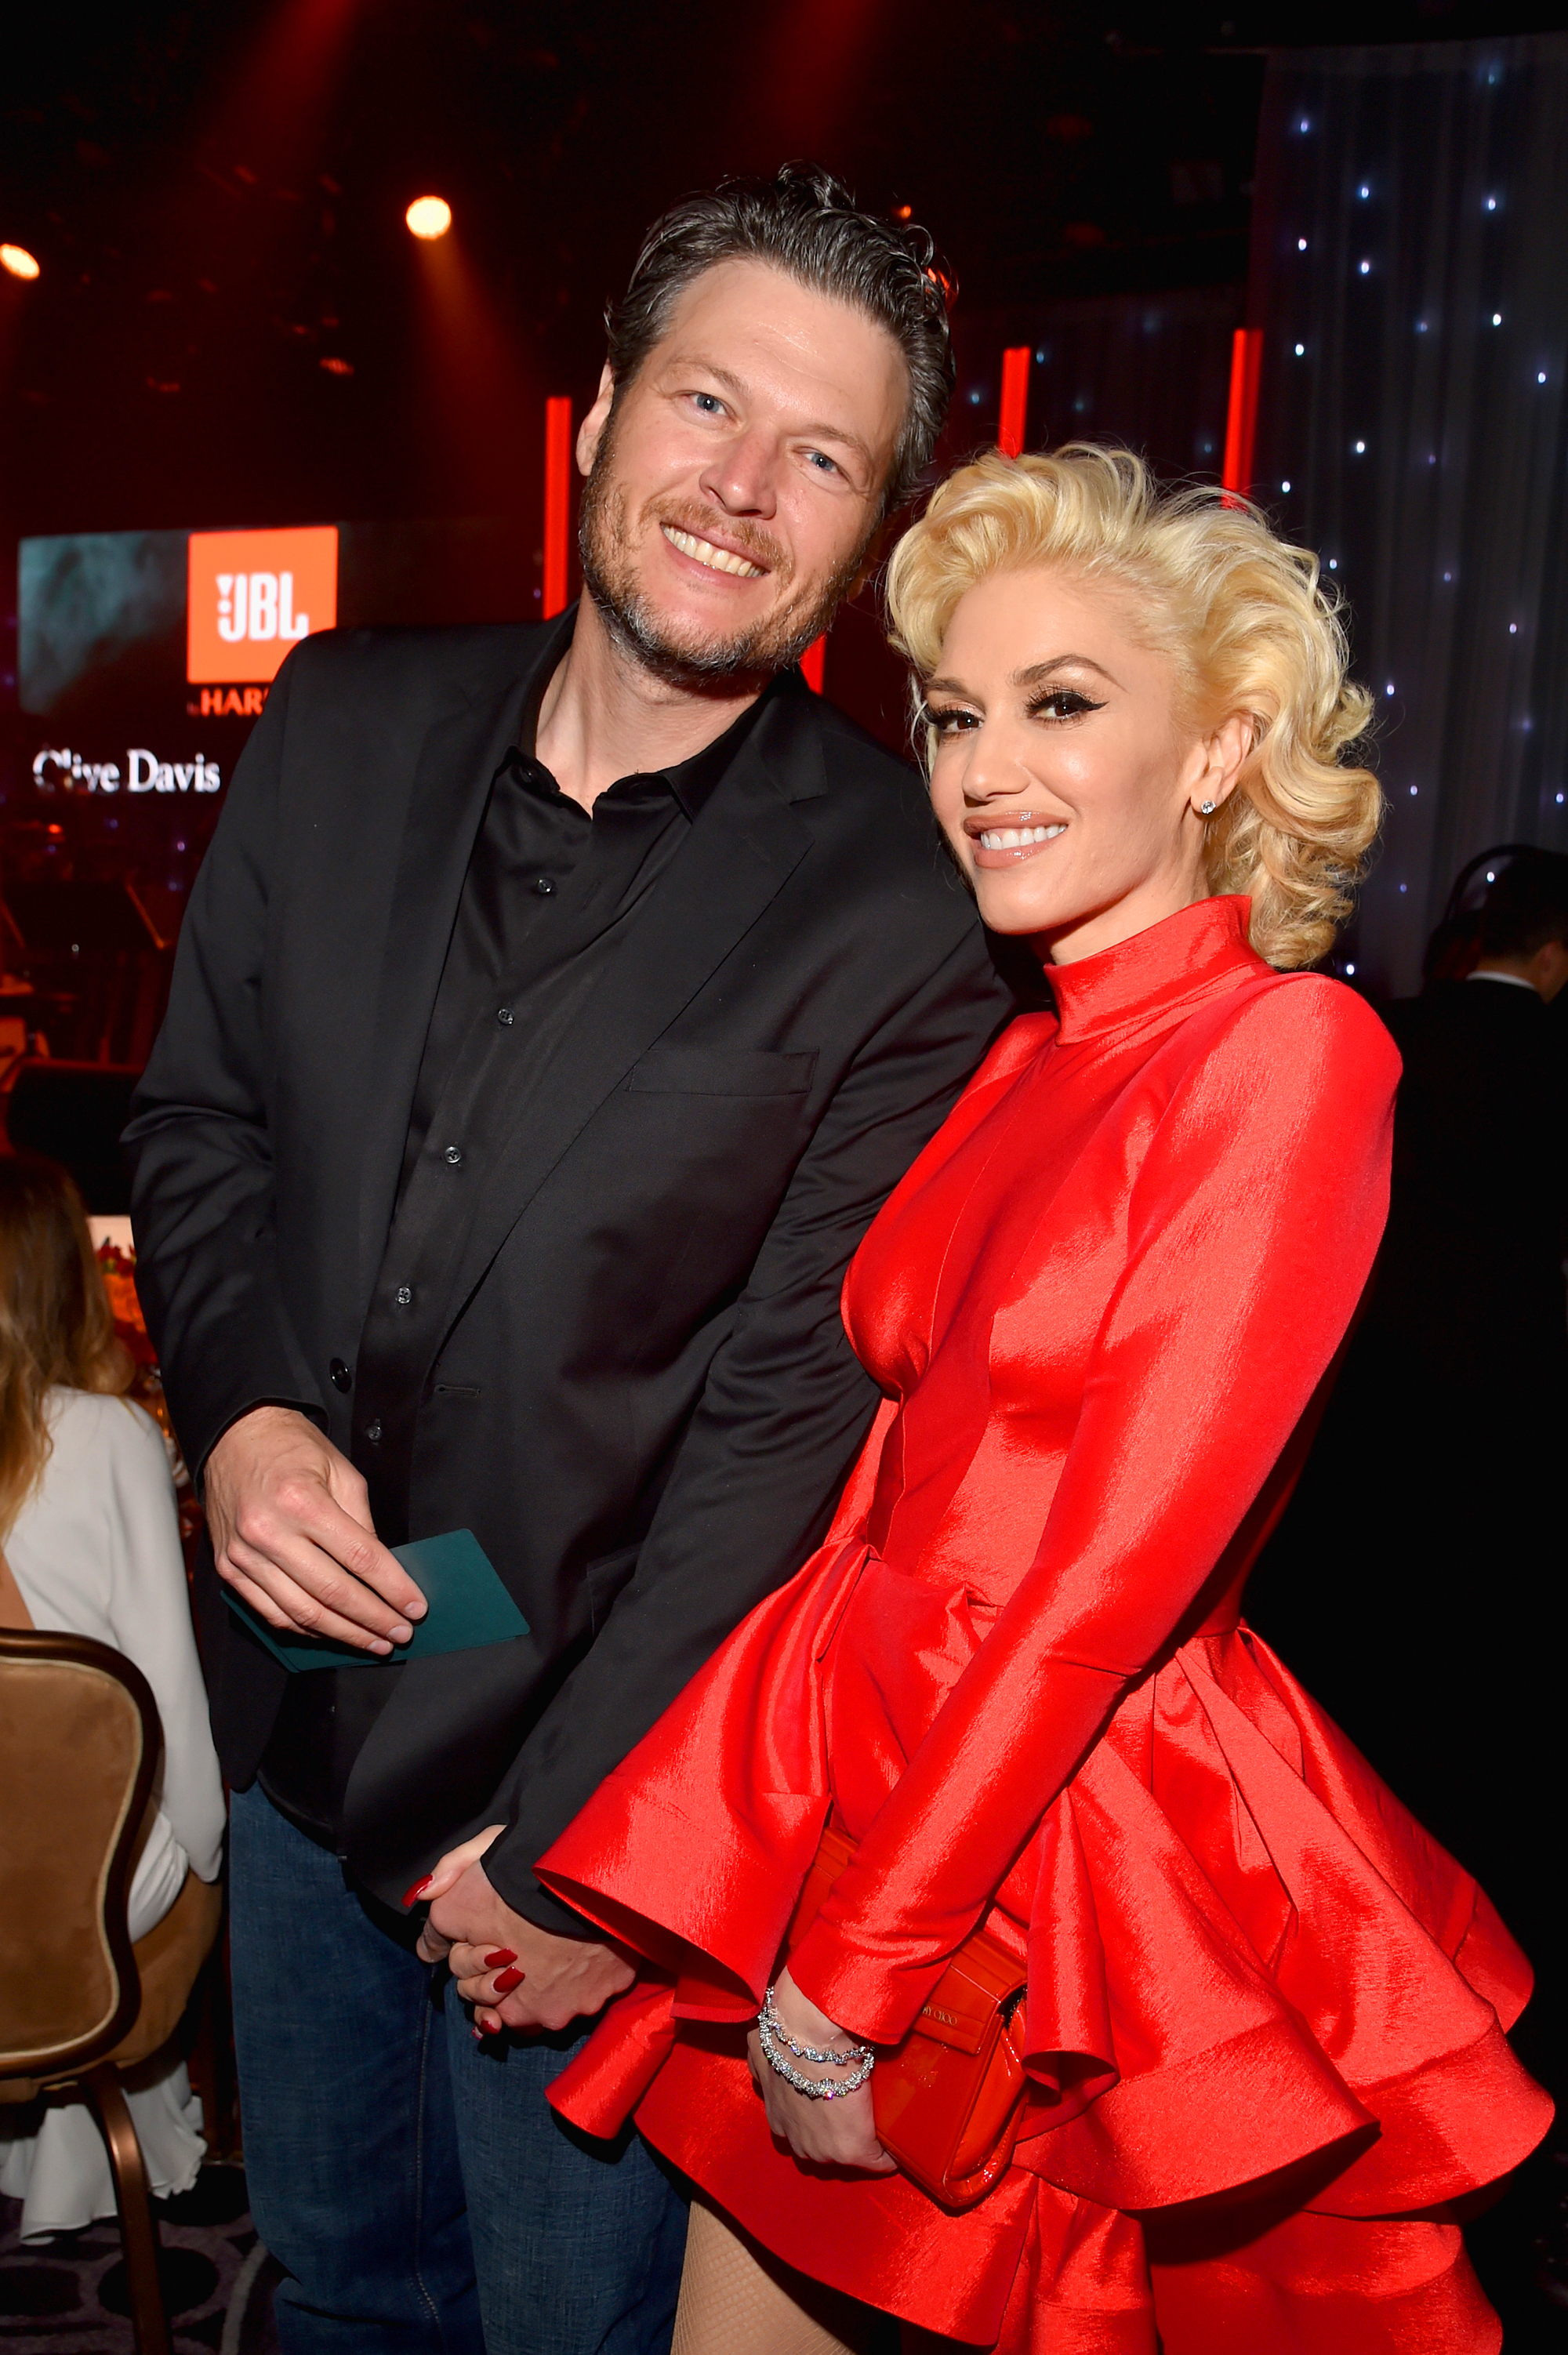 hot rebound romance - BEVERLY HILLS, CA – FEBRUARY 14: Recording artists Blake Shelton (L) and Gwen Stefani attend the 2016 Pre-GRAMMY Gala and Salute to Industry Icons honoring Irving Azoff at The Beverly Hilton Hotel on February 14, 2016 in Beverly Hills, California. (Photo by Lester Cohen/WireImage)